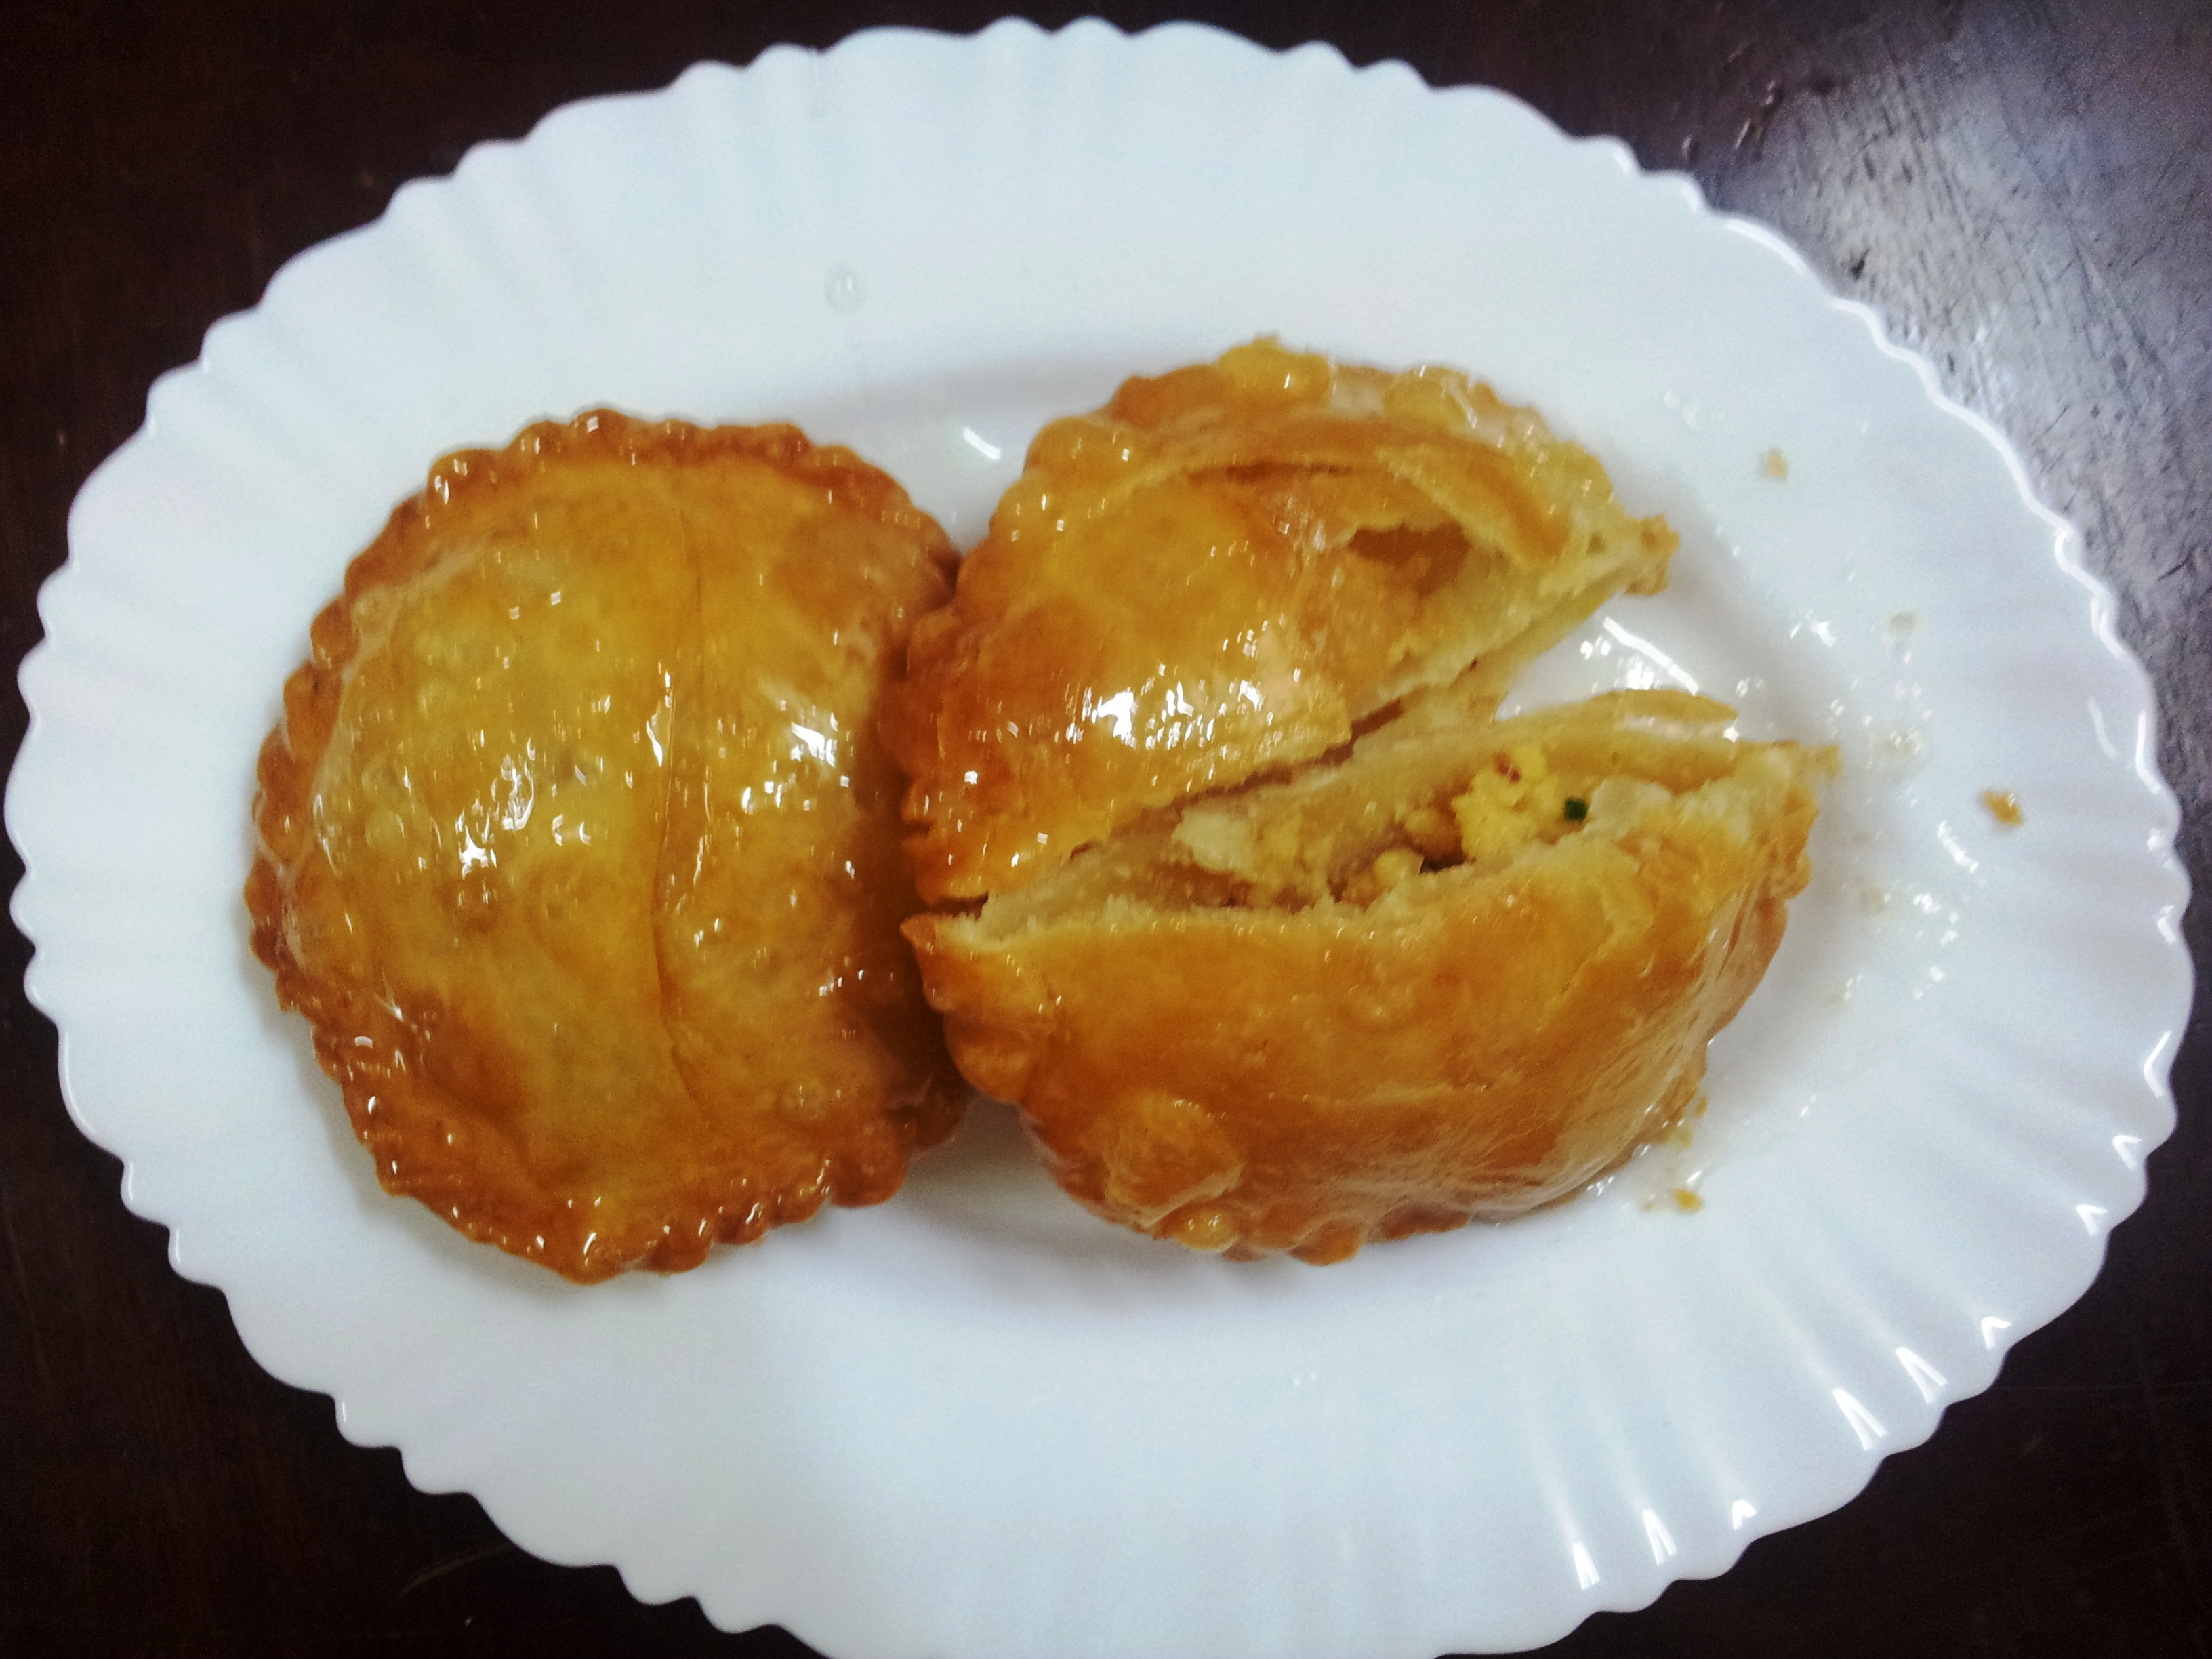 Dessert recipe how to make chandrakala gujiya foodeez junction enjoy the festival of colours with this dessert chandrakala gujiya recipe happy holi tip seal the edges of all puris of chandrakala gujhya nicely forumfinder Choice Image